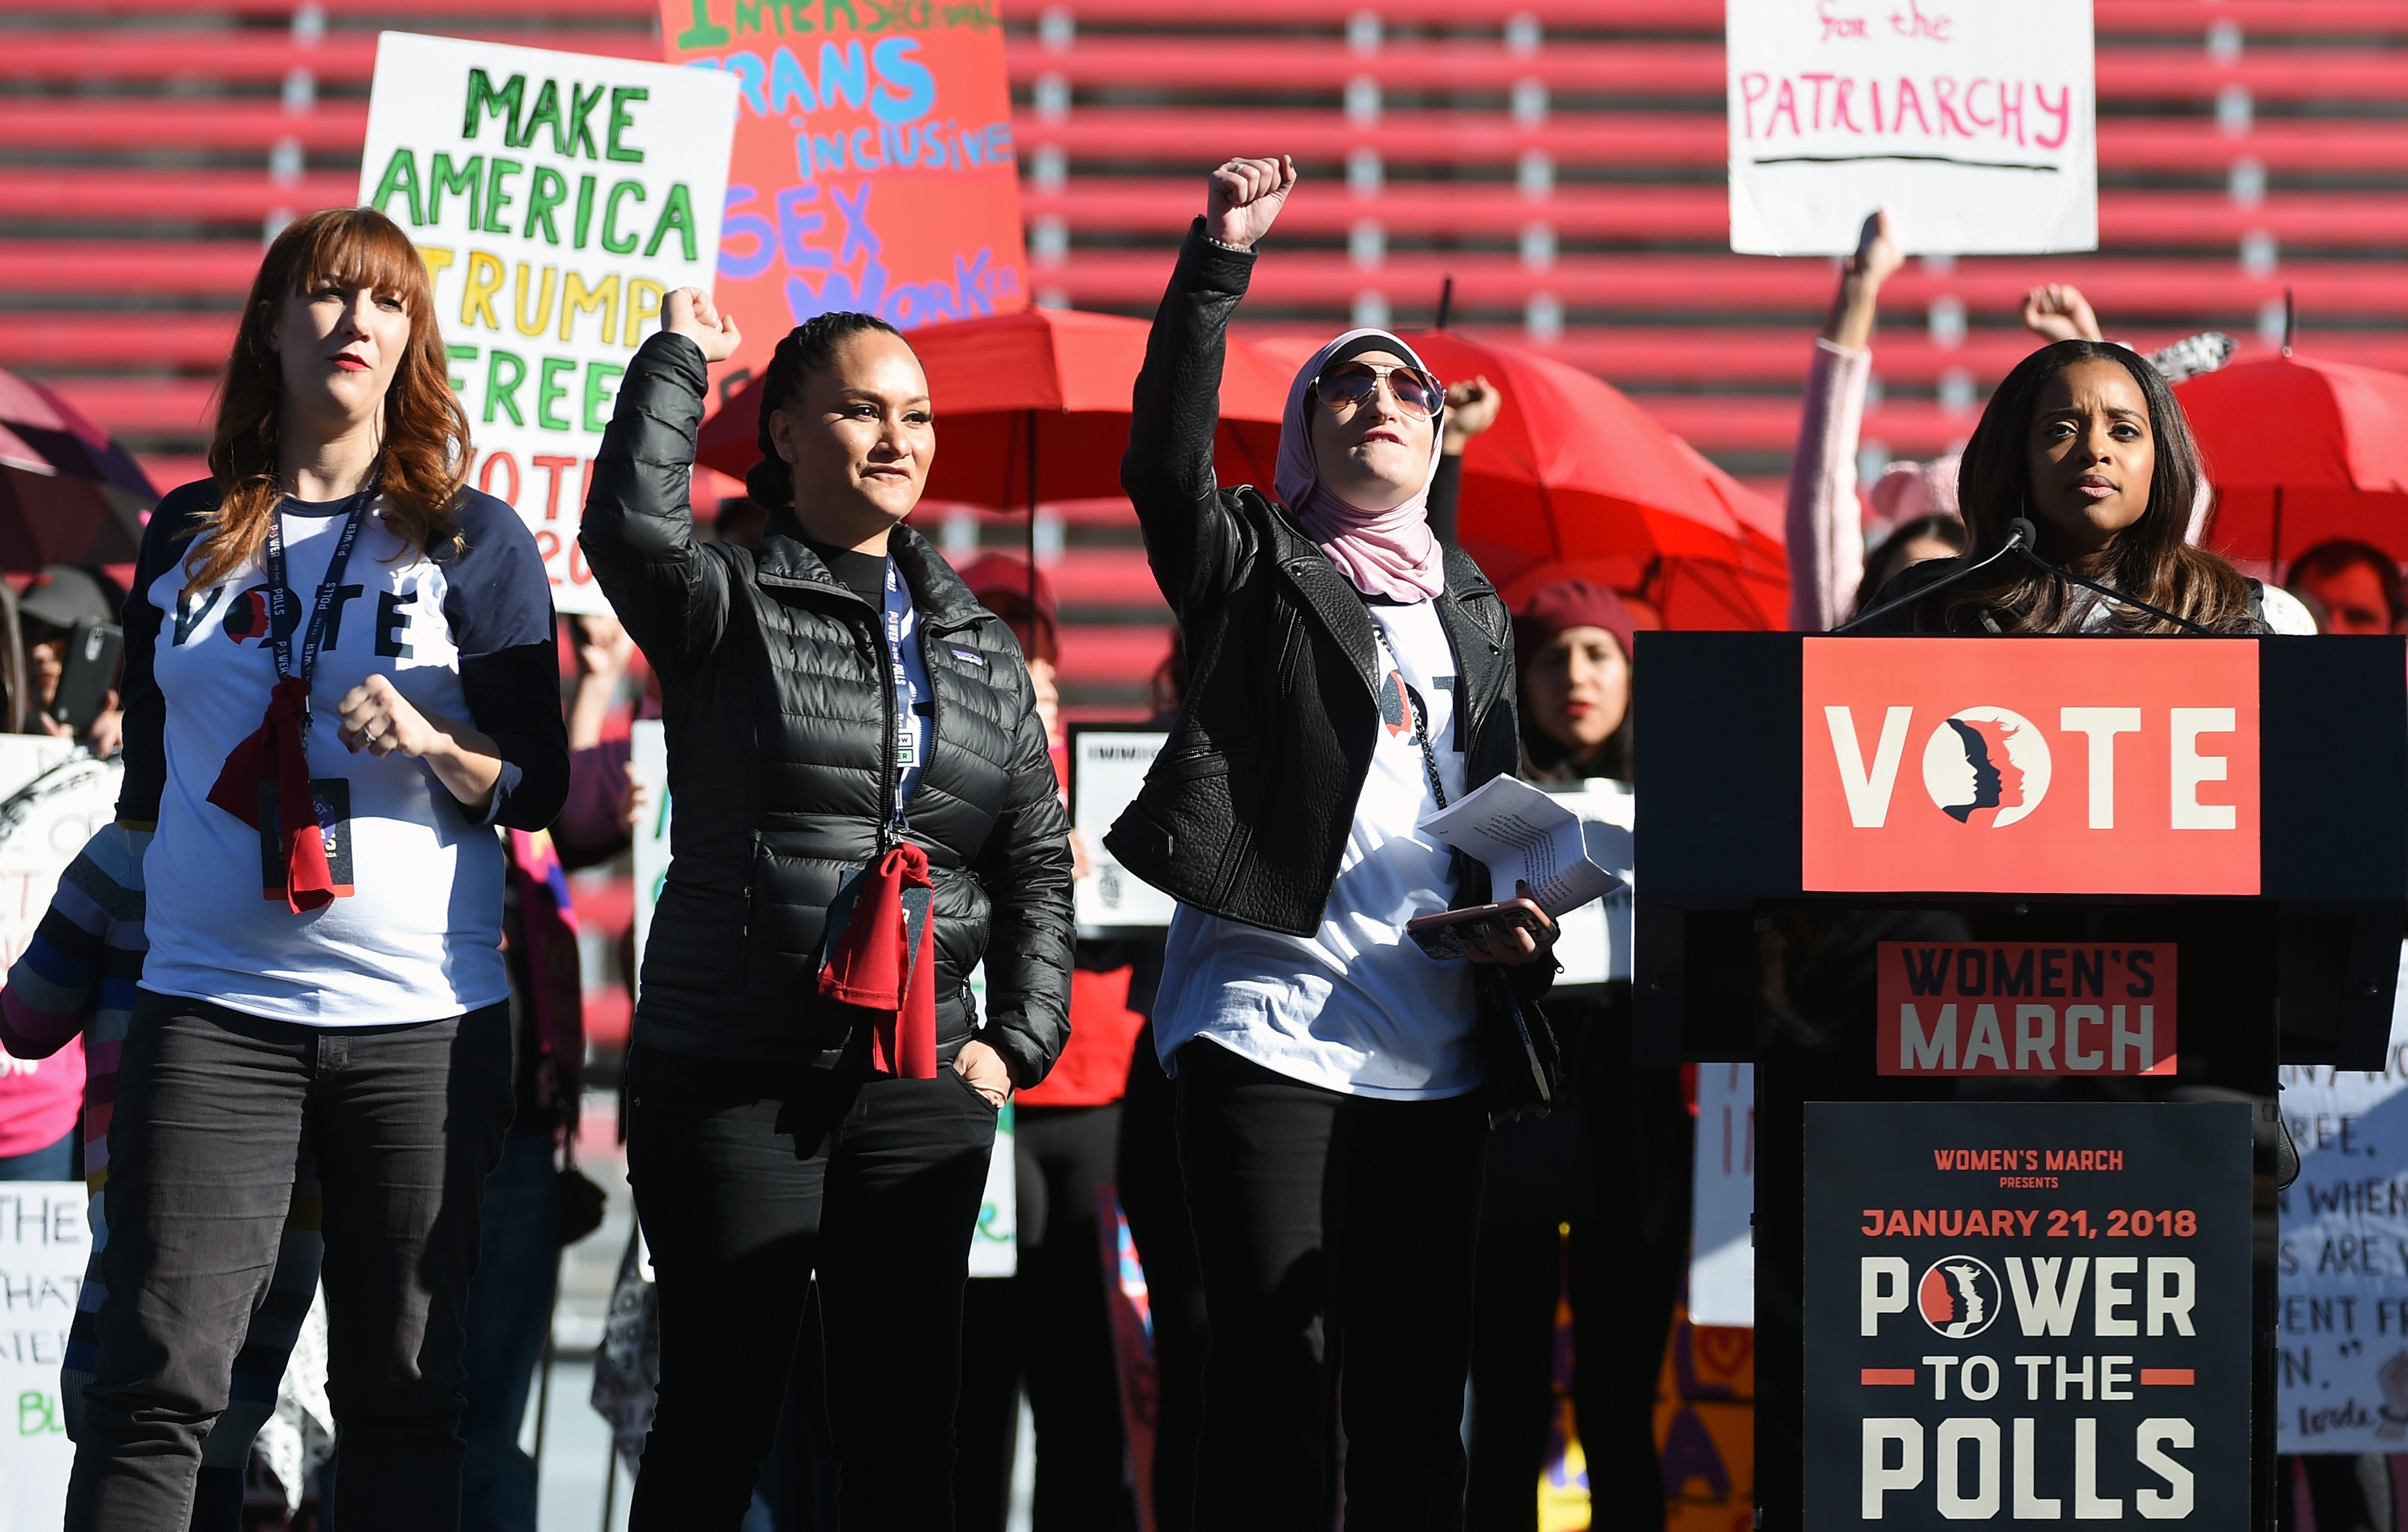 "LAS VEGAS, NV - JANUARY 21: (L-R) Women's March Co-Chairwomen Bob Bland, Carmen Perez, Linda Sarsour and Tamika D. Mallory speak during the Women's March ""Power to the Polls"" voter registration tour launch at Sam Boyd Stadium on January 21, 2018 in Las Vegas, Nevada. Demonstrators across the nation gathered over the weekend, one year after the historic Women's March on Washington, D.C., to protest President Donald Trump's administration and to raise awareness for women's issues. (Photo by Ethan Miller/Getty Images)"